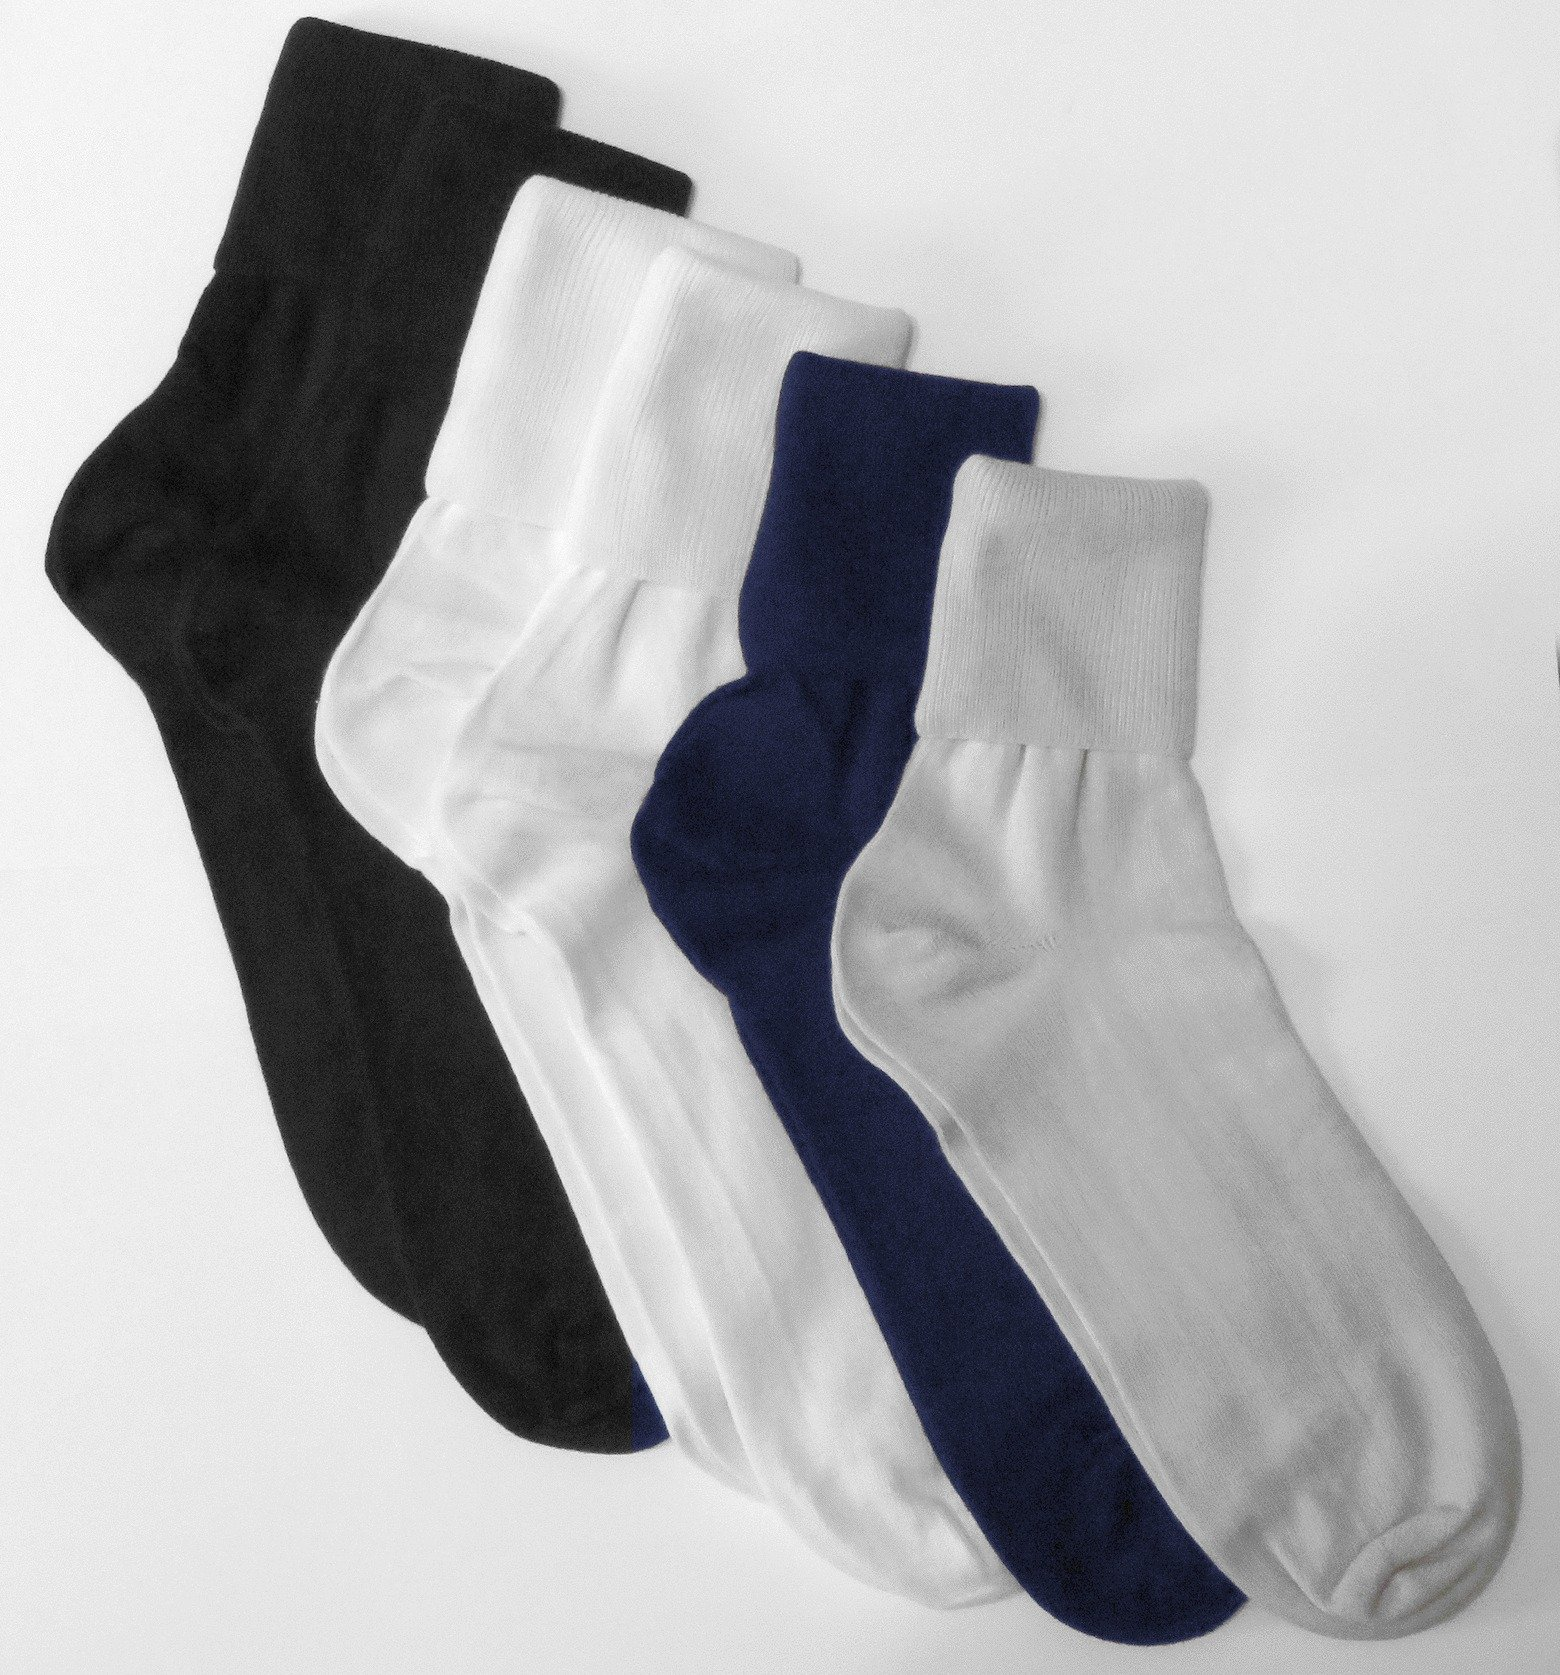 6 Pair Women's Assorted Buster Brown Elastic-Free Cotton Socks - Sock Size 11 - Fits Shoe Sizes 9.5-10.5